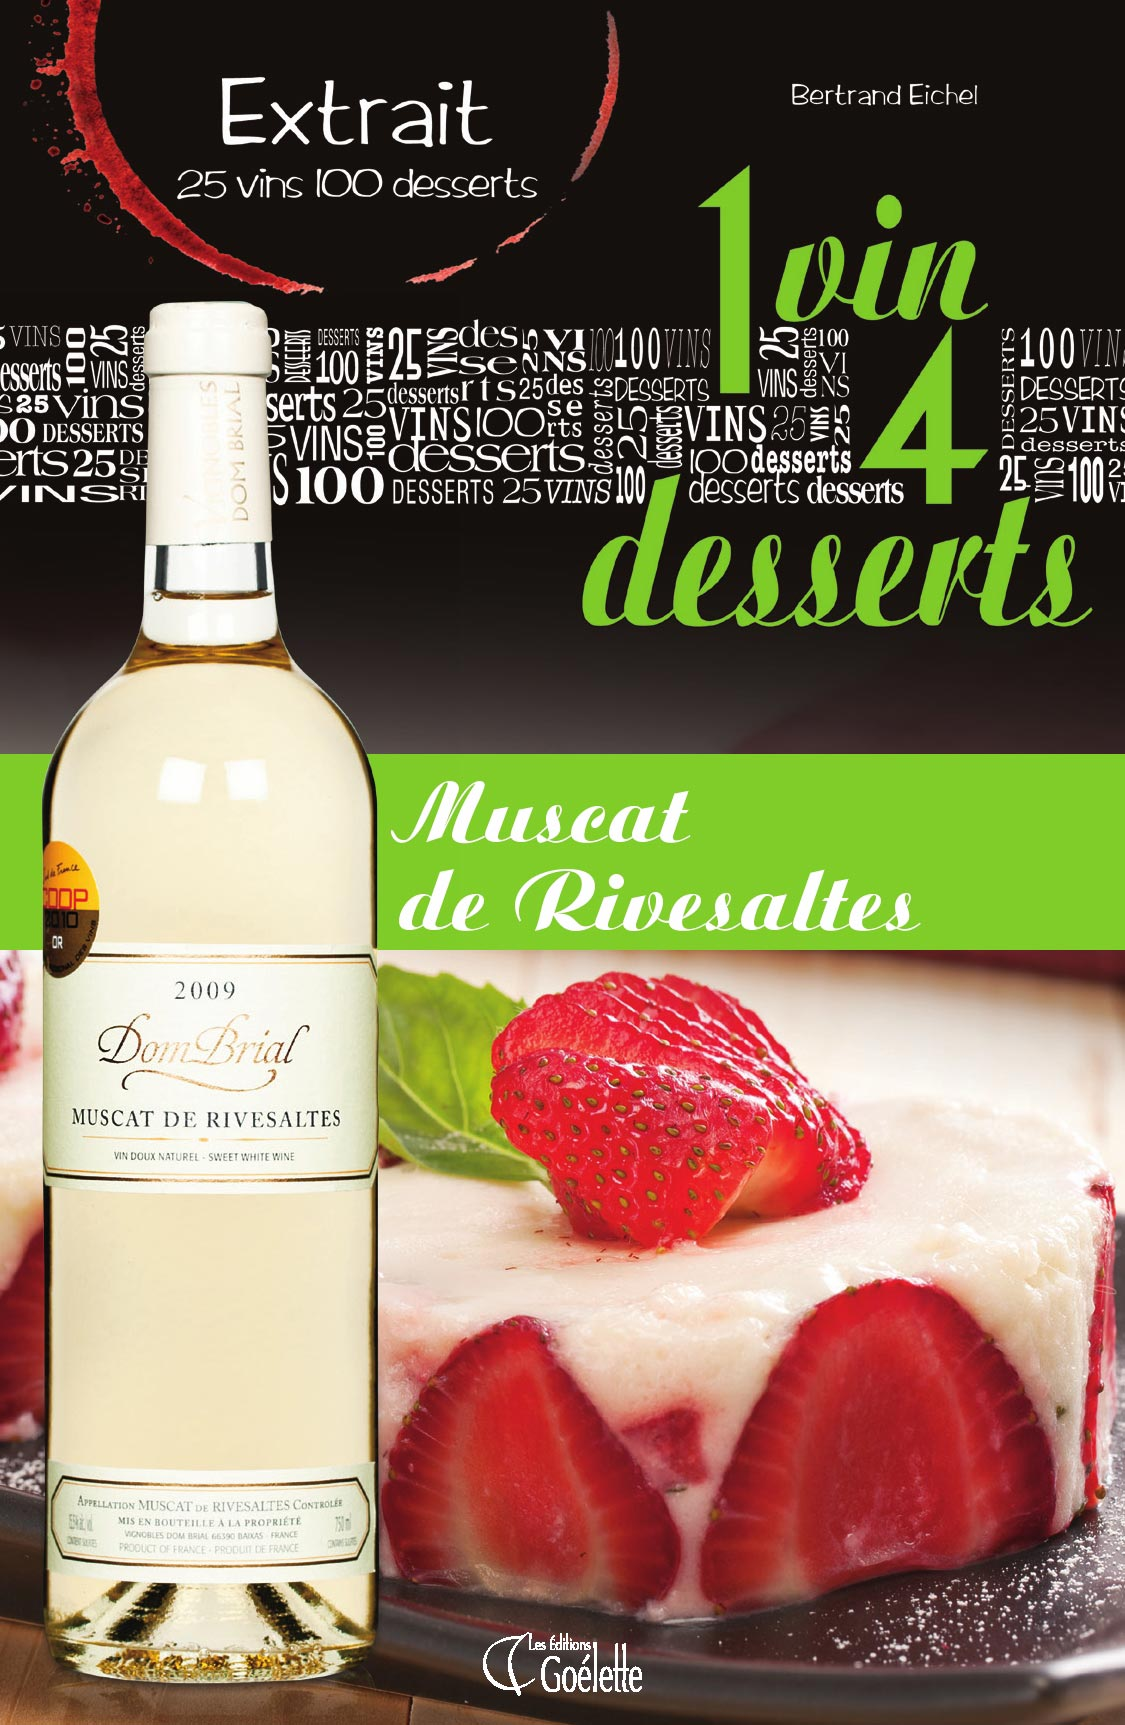 1 VIN 4 DESSERTS - MUSCAT DE RIVESALTES